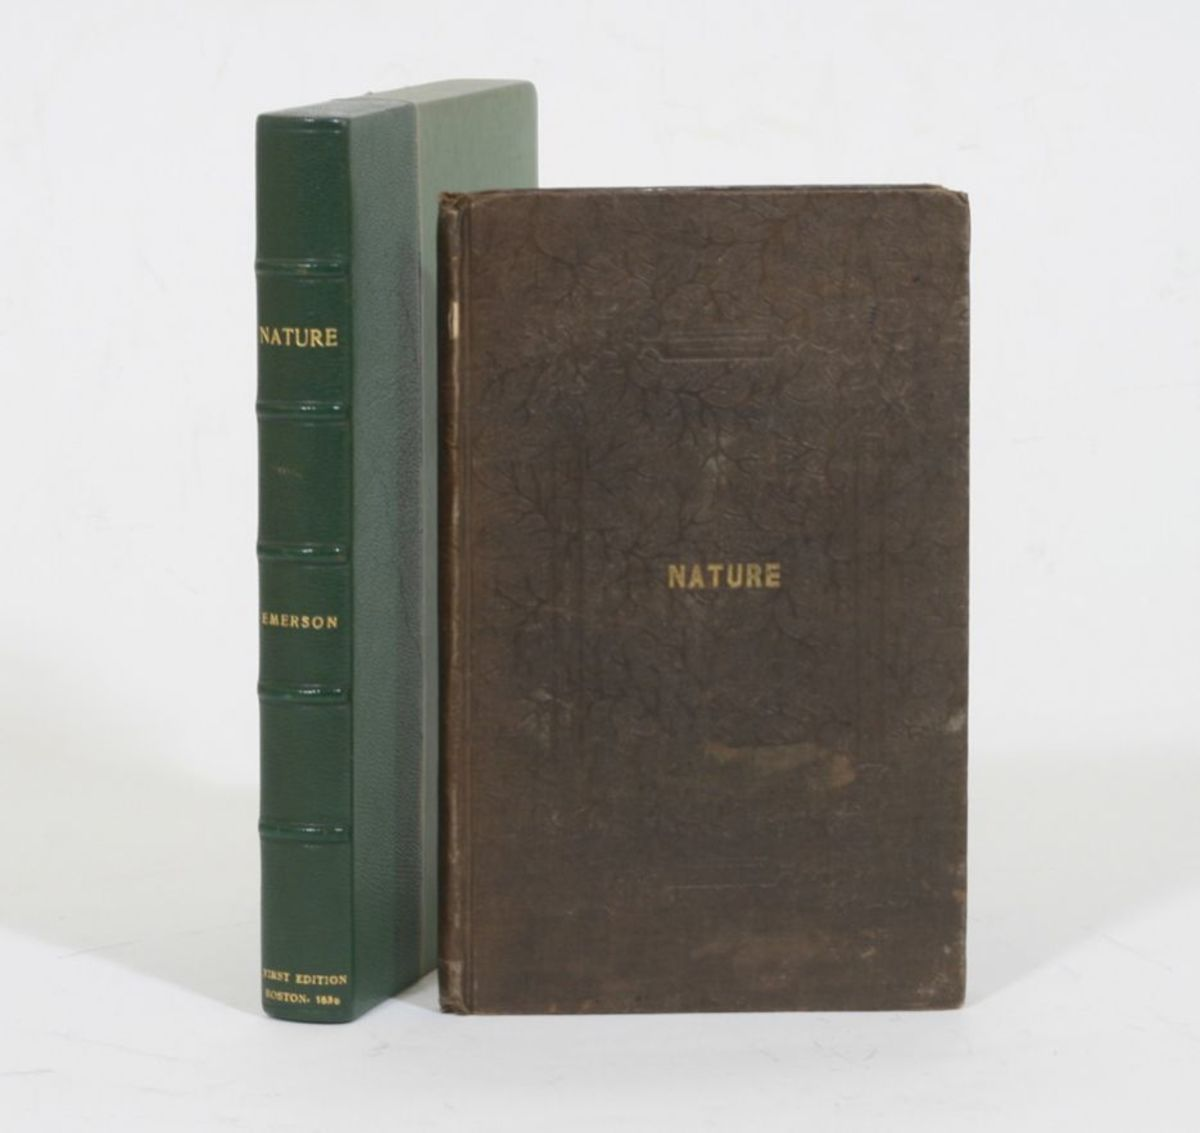 Nature by Ralph Waldo Emerson (1st Edition)